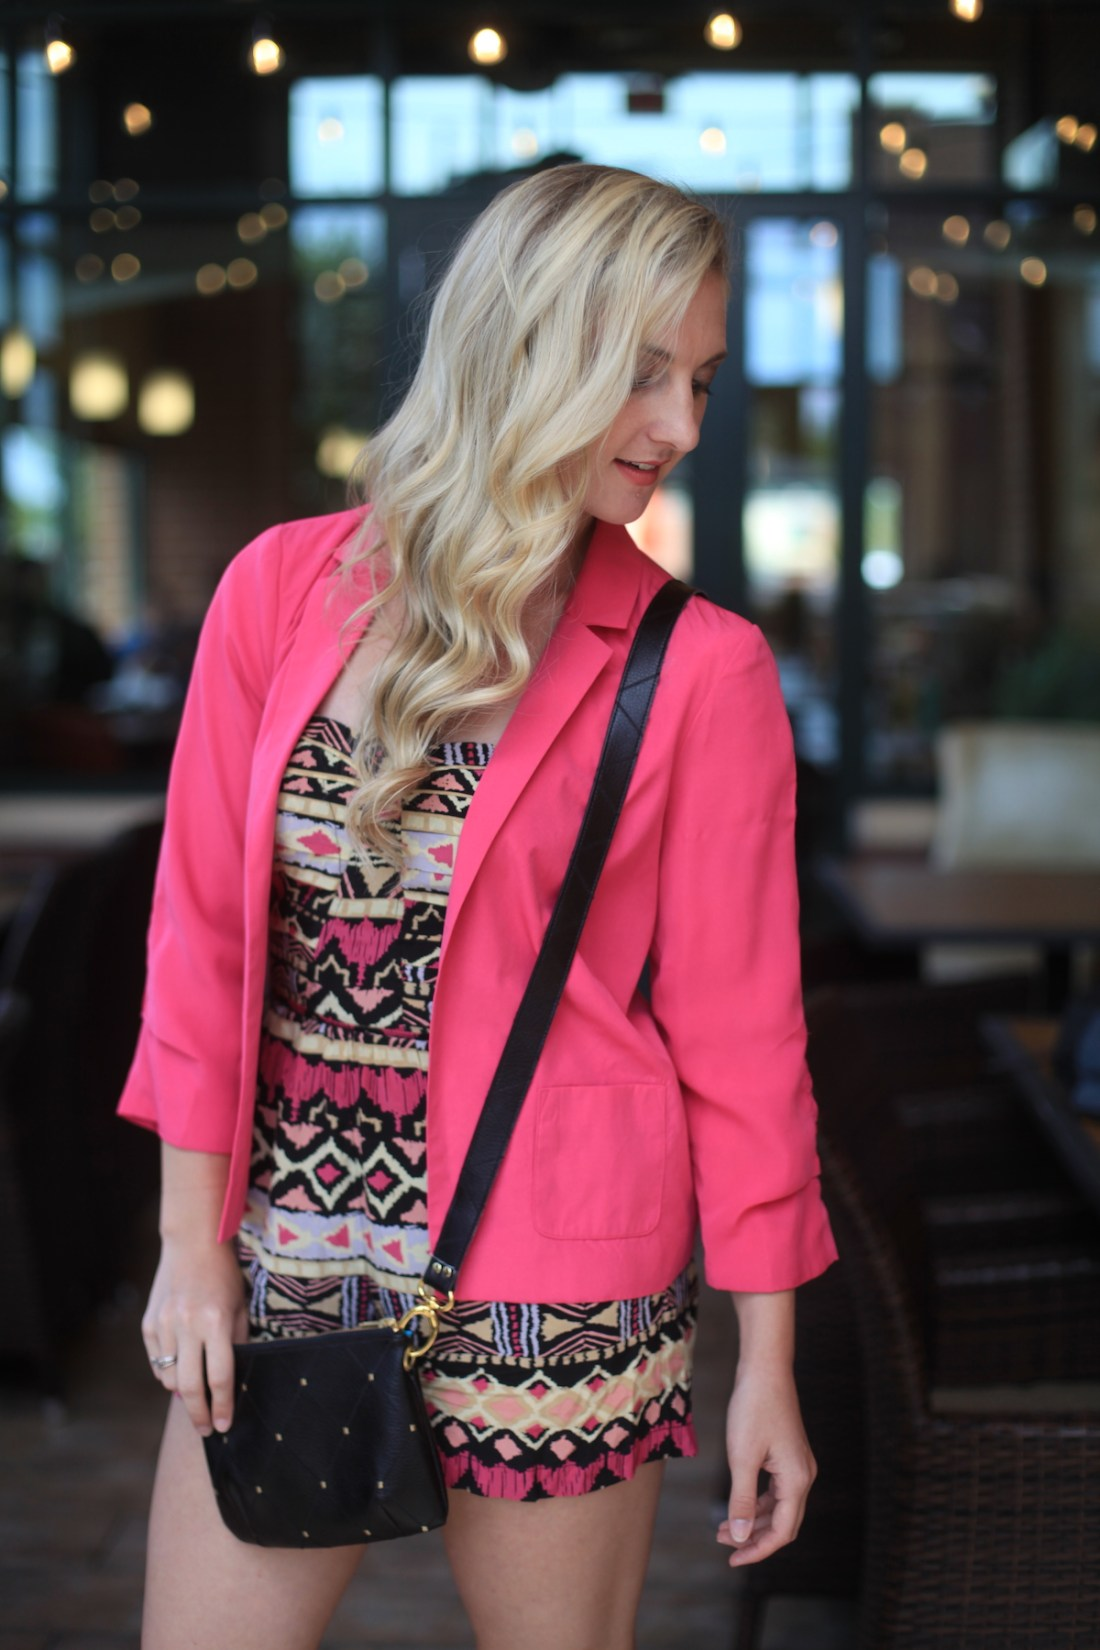 One Look + One Life Lesson // Daylin Skye Handbag, Pink Blazer, Aztec Romper Styled by Allyn Lewis